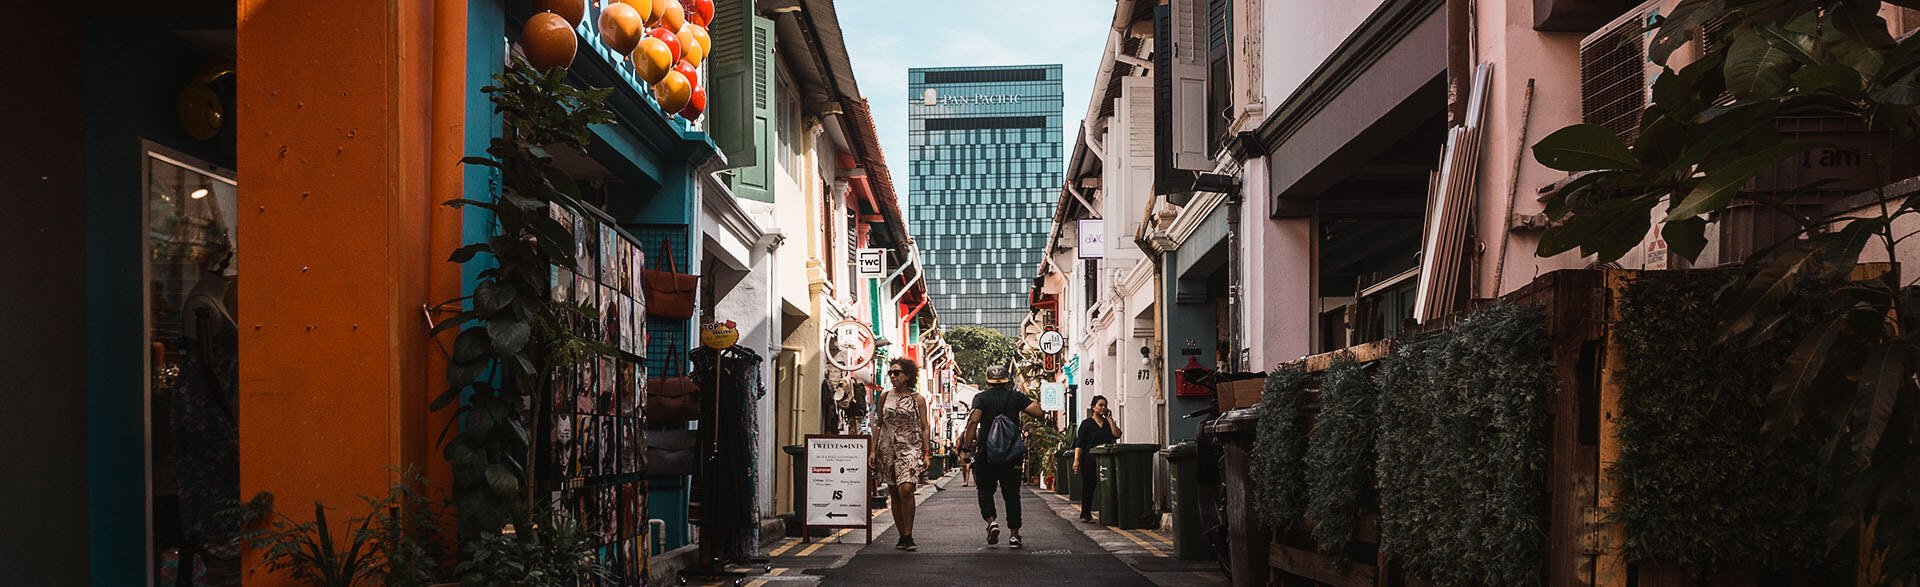 Best things to do in Singapore on a budget.